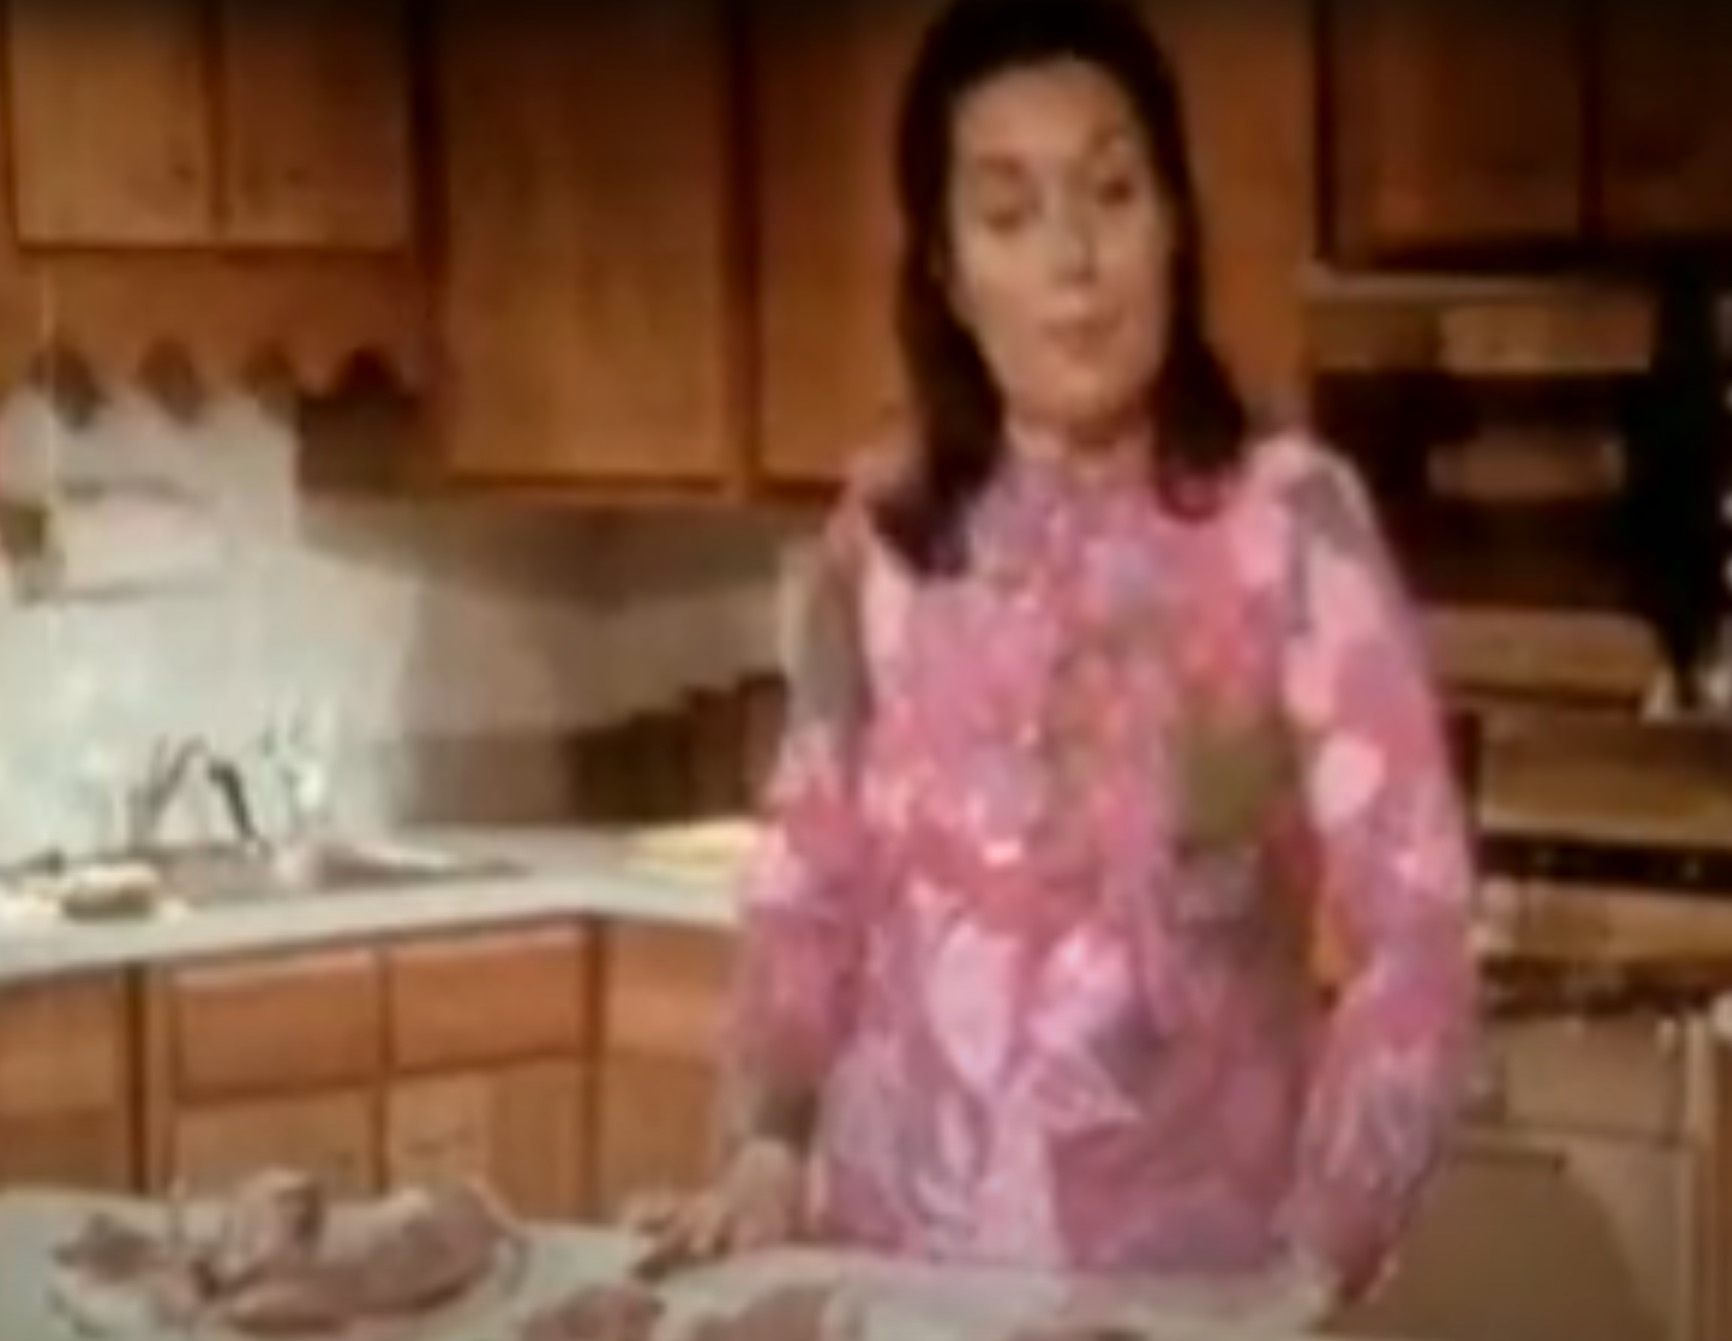 This 1970s video gives detailed advice about how to buy and prepare meat